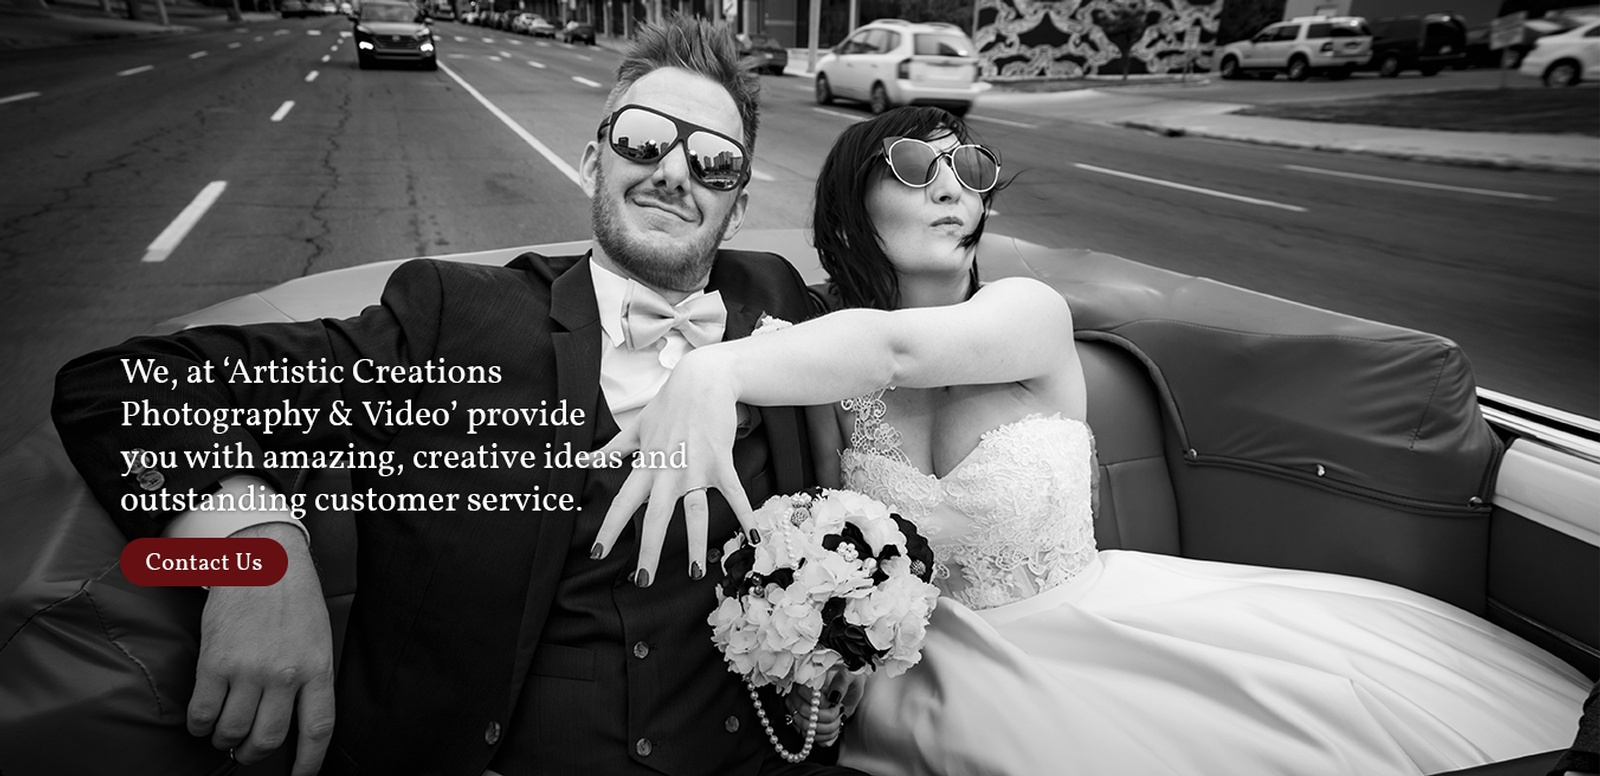 Artistic Creations Photography and Video Provide you with amazing, creative ideas and outstanding Customer Service